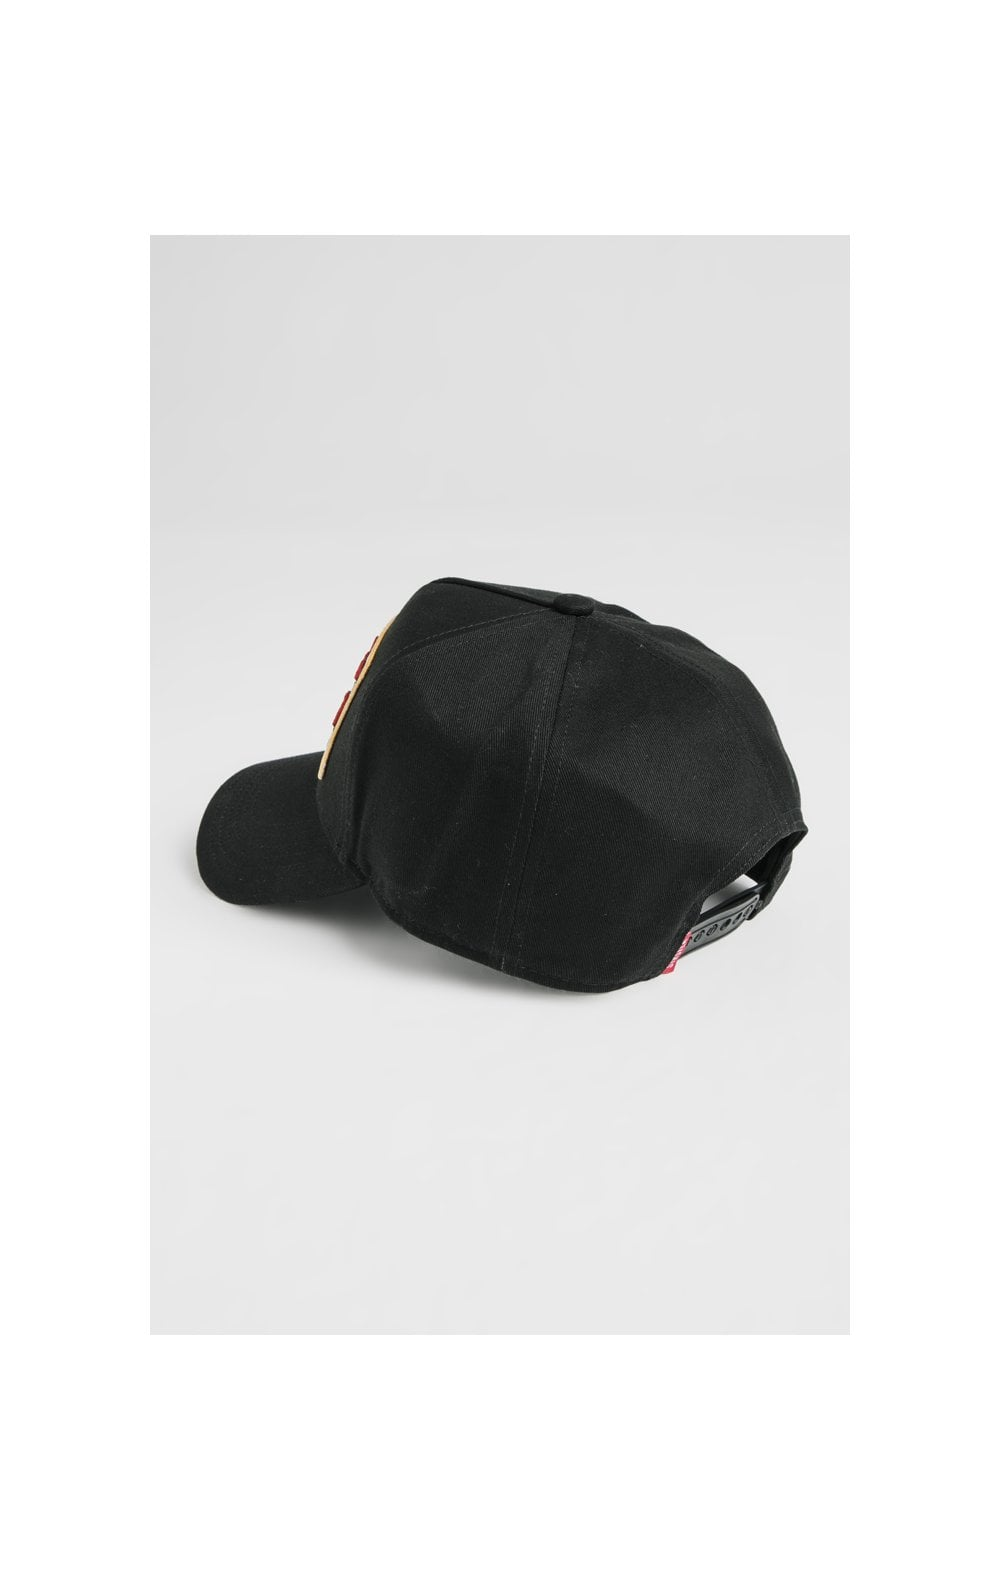 SikSilk Patch Full Trucker - Black (2)